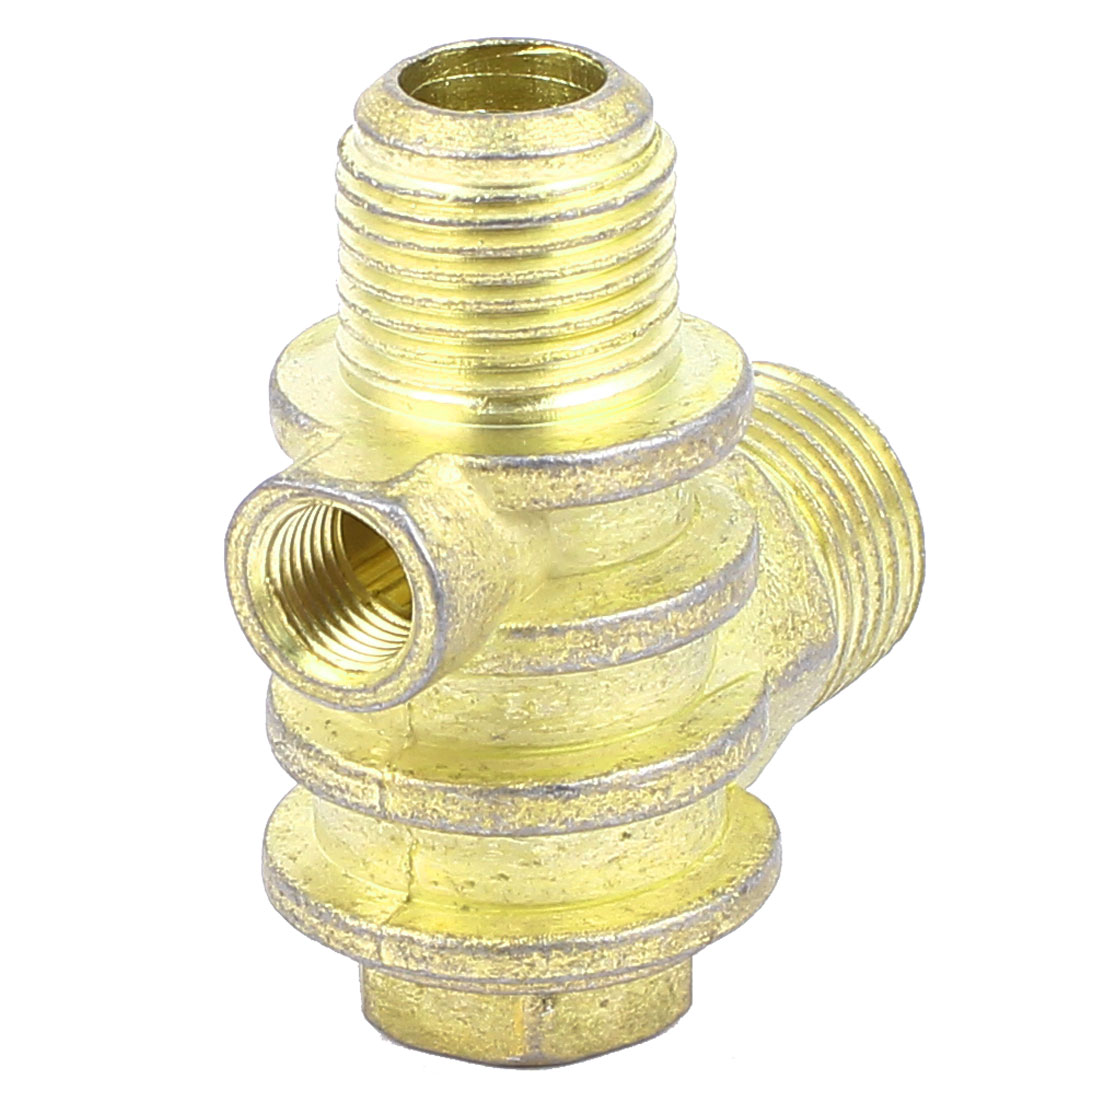 9mm Diameter Female Thread Brass Tone Metal Air Compressor Check Valve Connector